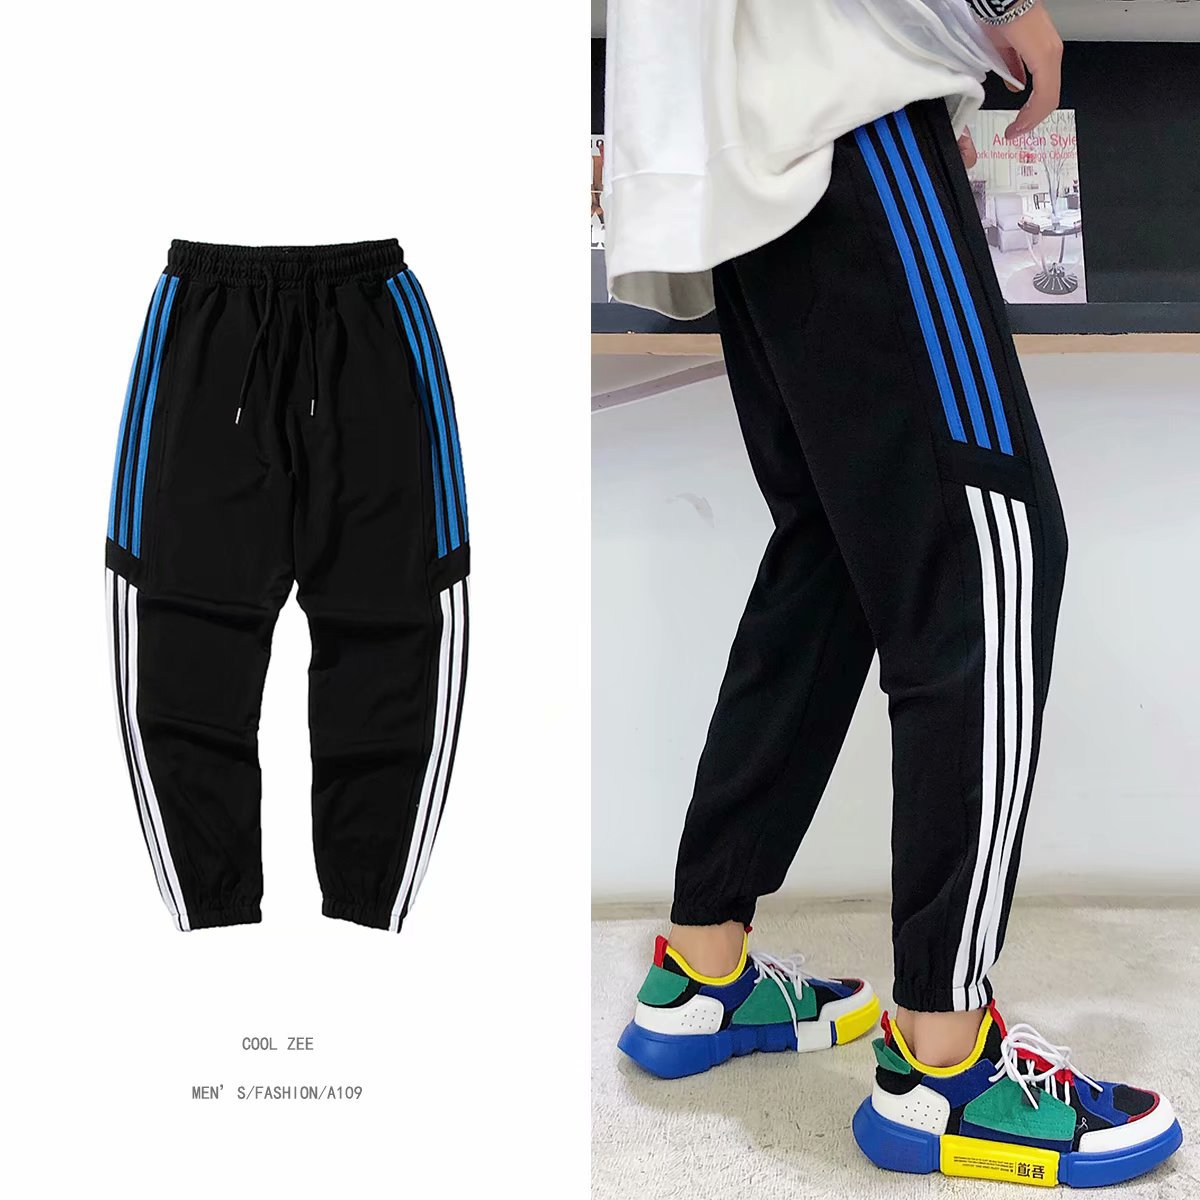 Hong Kong Style INS MEN'S Pants Autumn Students Beam Leg Athletic Pants BF Hip Hop Loose-Fit Popular Brand Stripes Casual